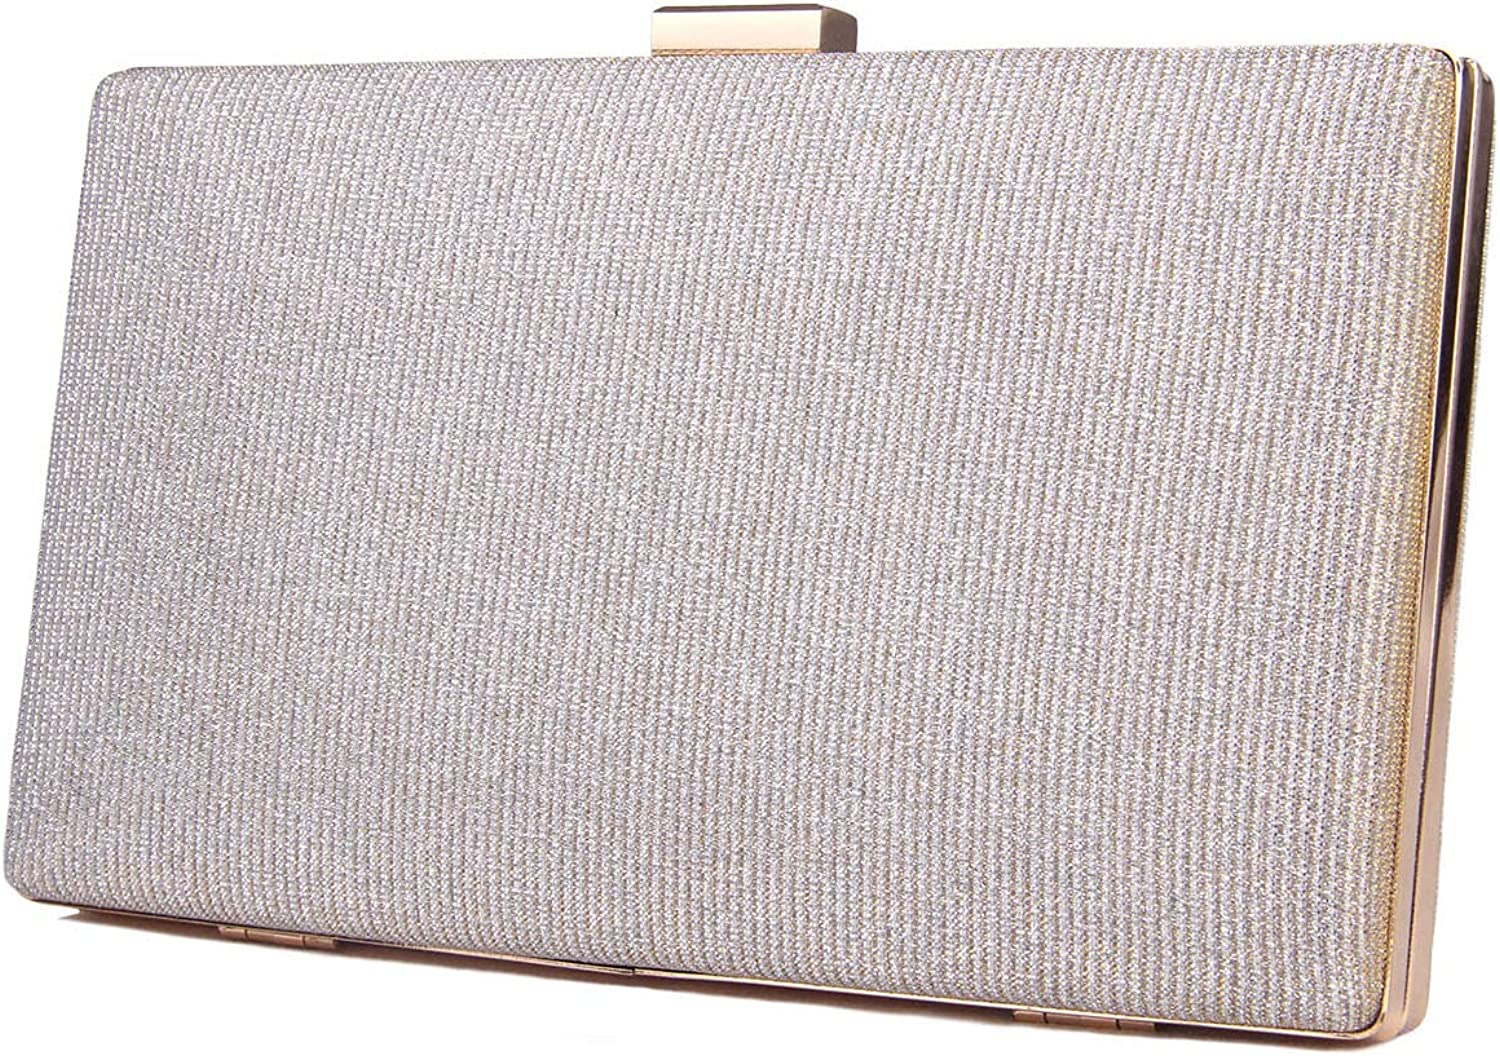 Create Fashion Women's Clutch Evening Bag Sparkling Fabric For Party Wedding